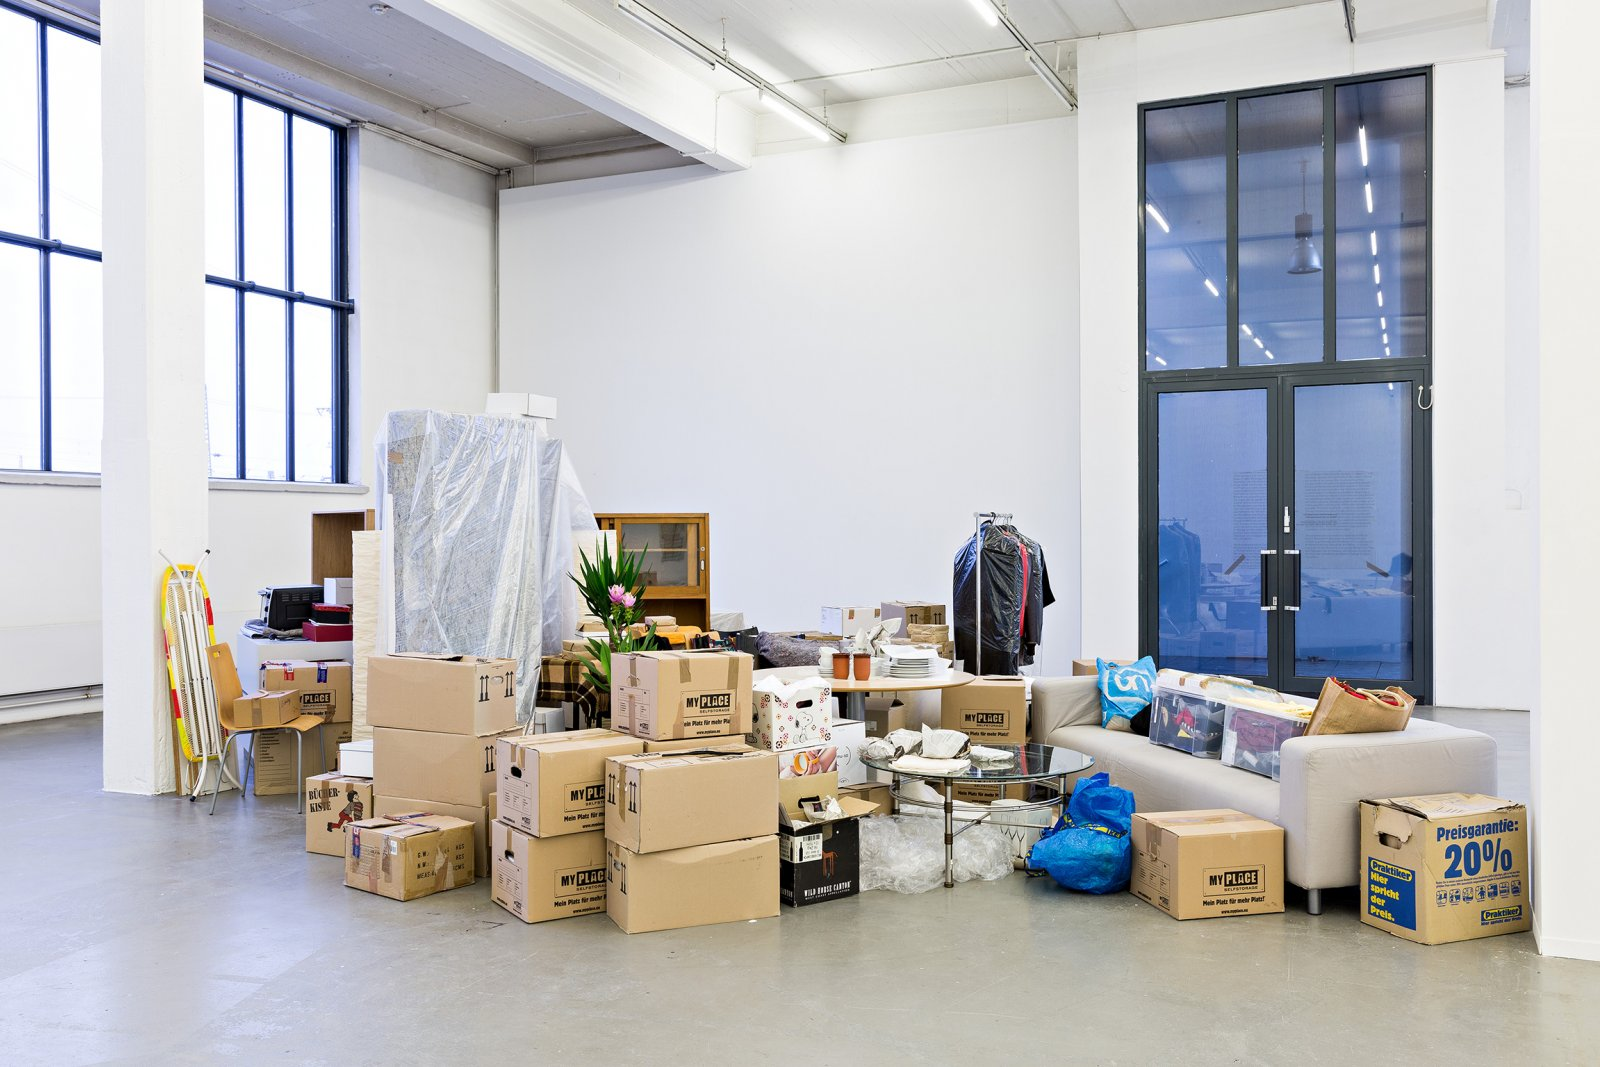 Liz Magor, One Bedroom Apartment, 1996–2017, polyester resin, contents of a one-bedroom apartment, dimensions variable. Installation view, you you you, Kunstverein in Hamburg, 2017 by Liz Magor